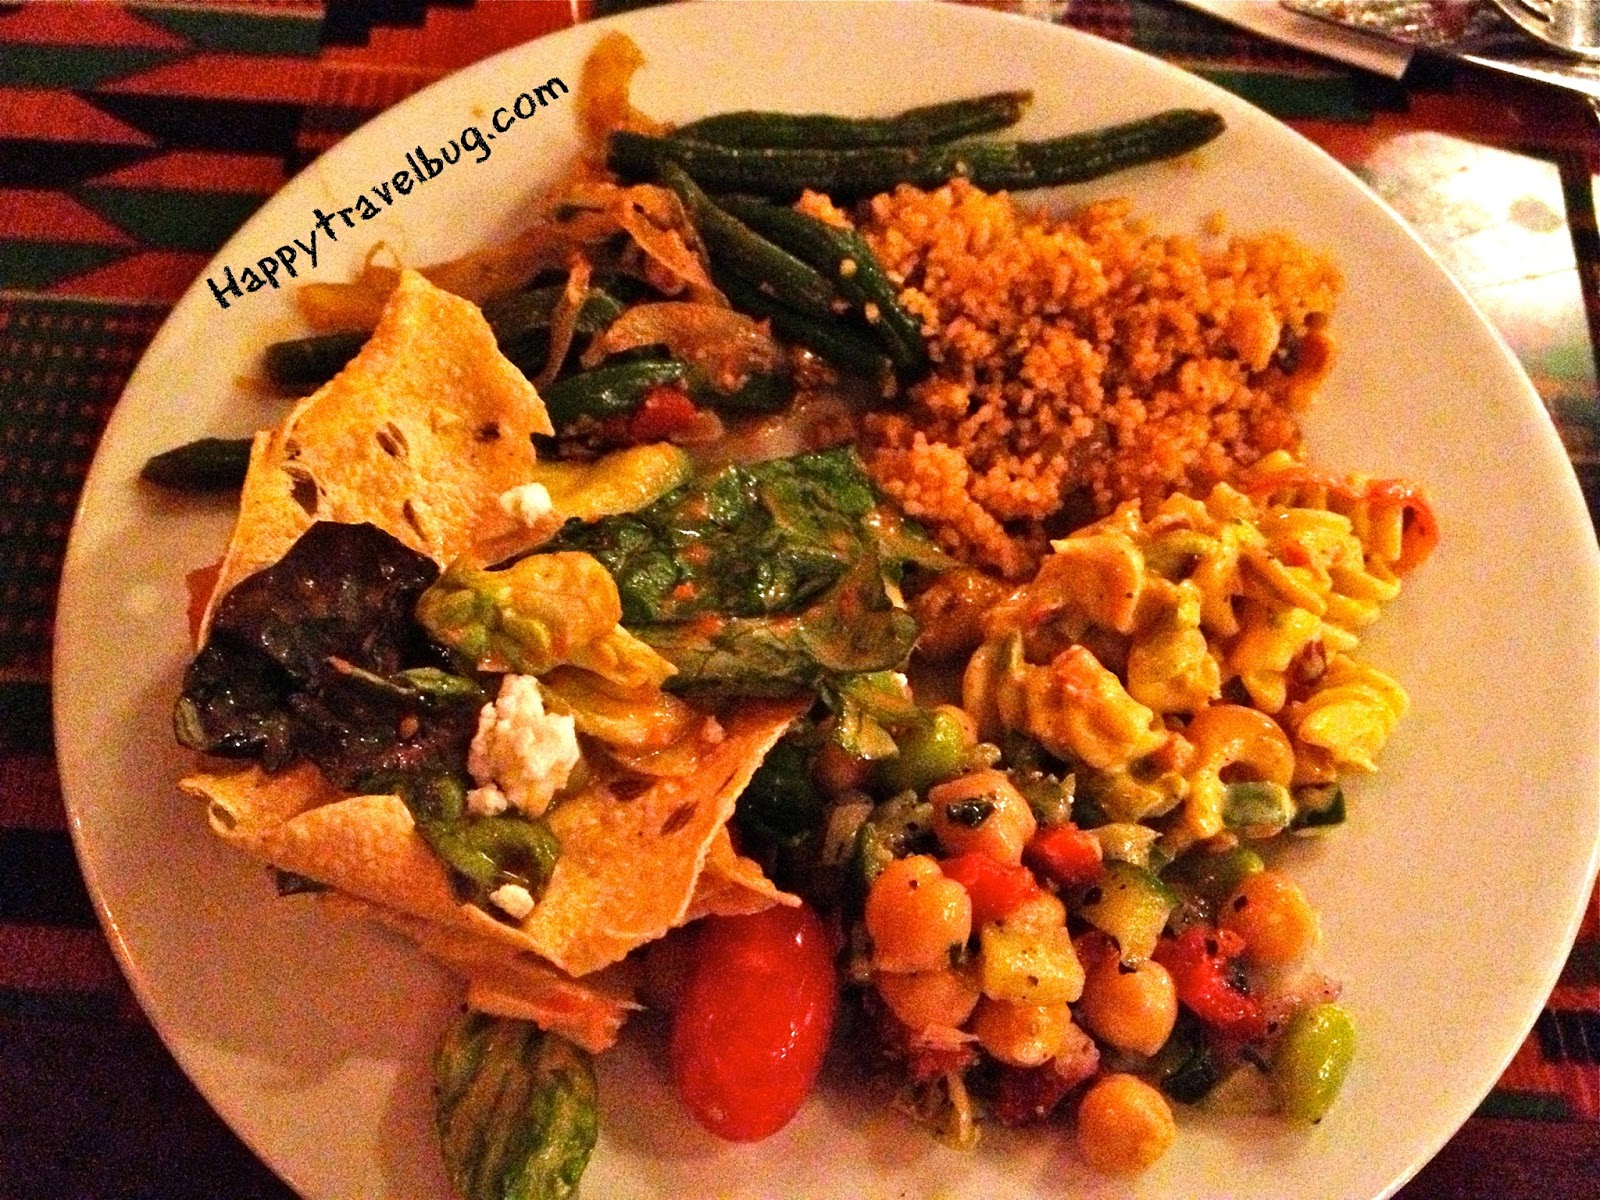 crackers, feisty green beans and couscous with dried fruits and nuts ...